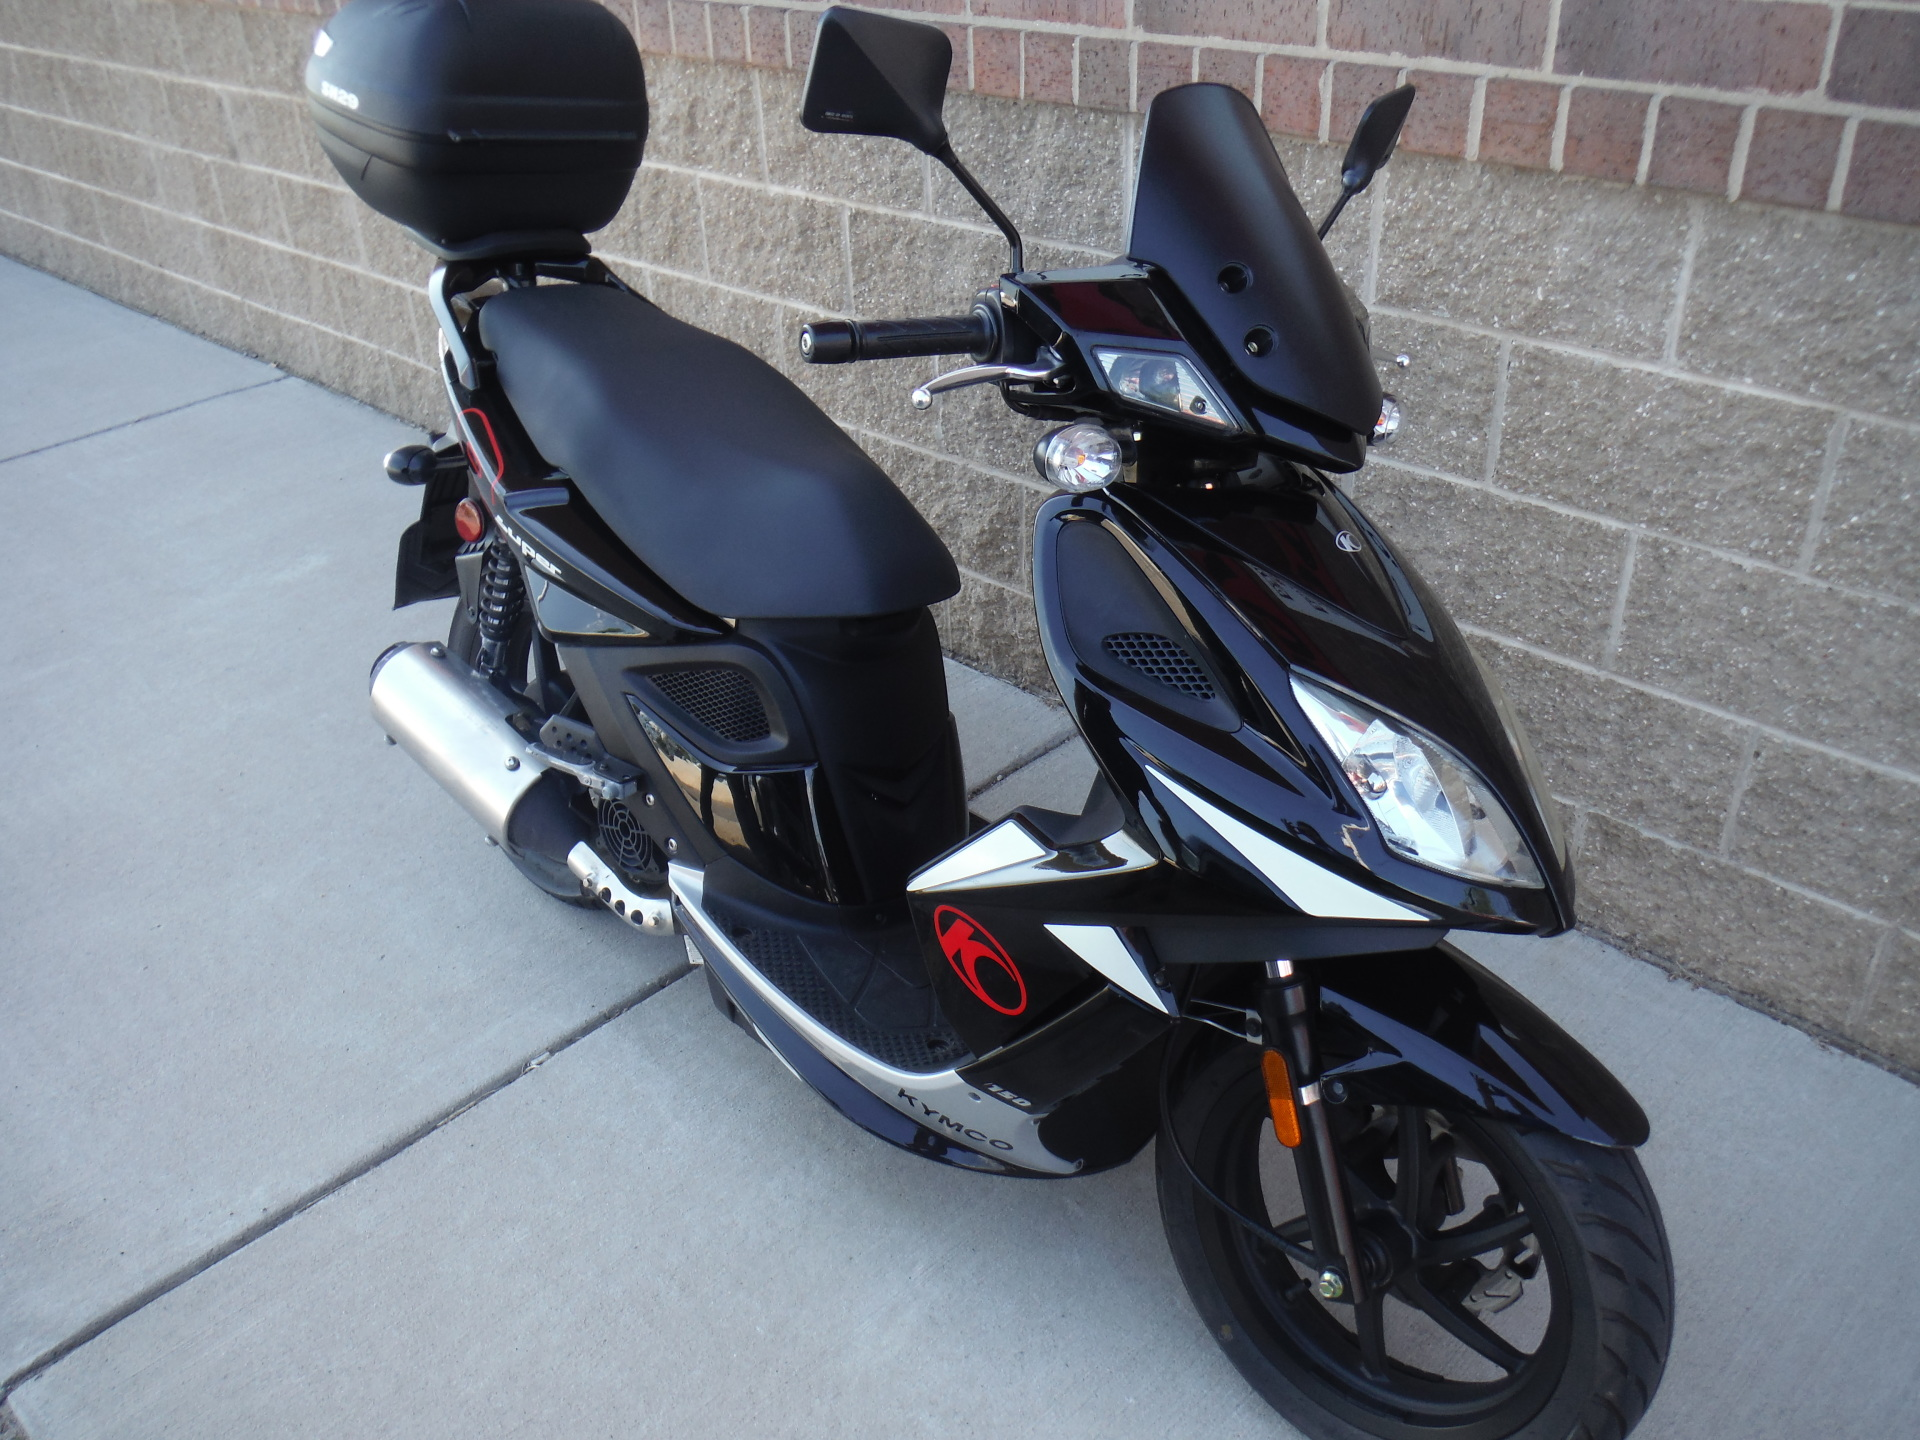 2013 Kymco Super 8 150 Scooter